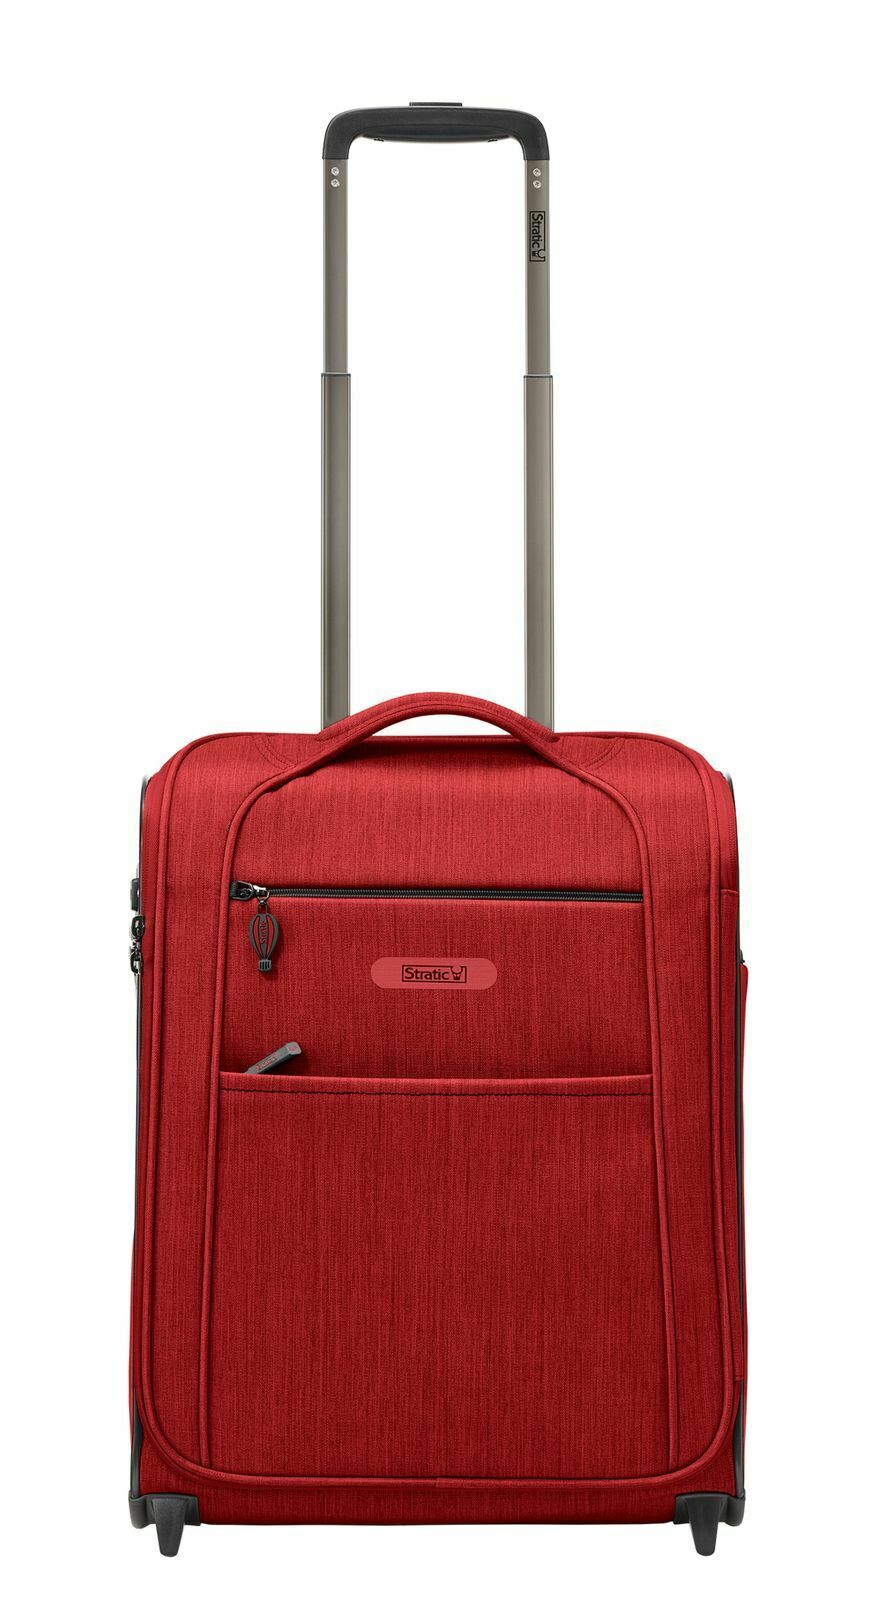 Stratic Floating Floating Floating autorello S rosso 299